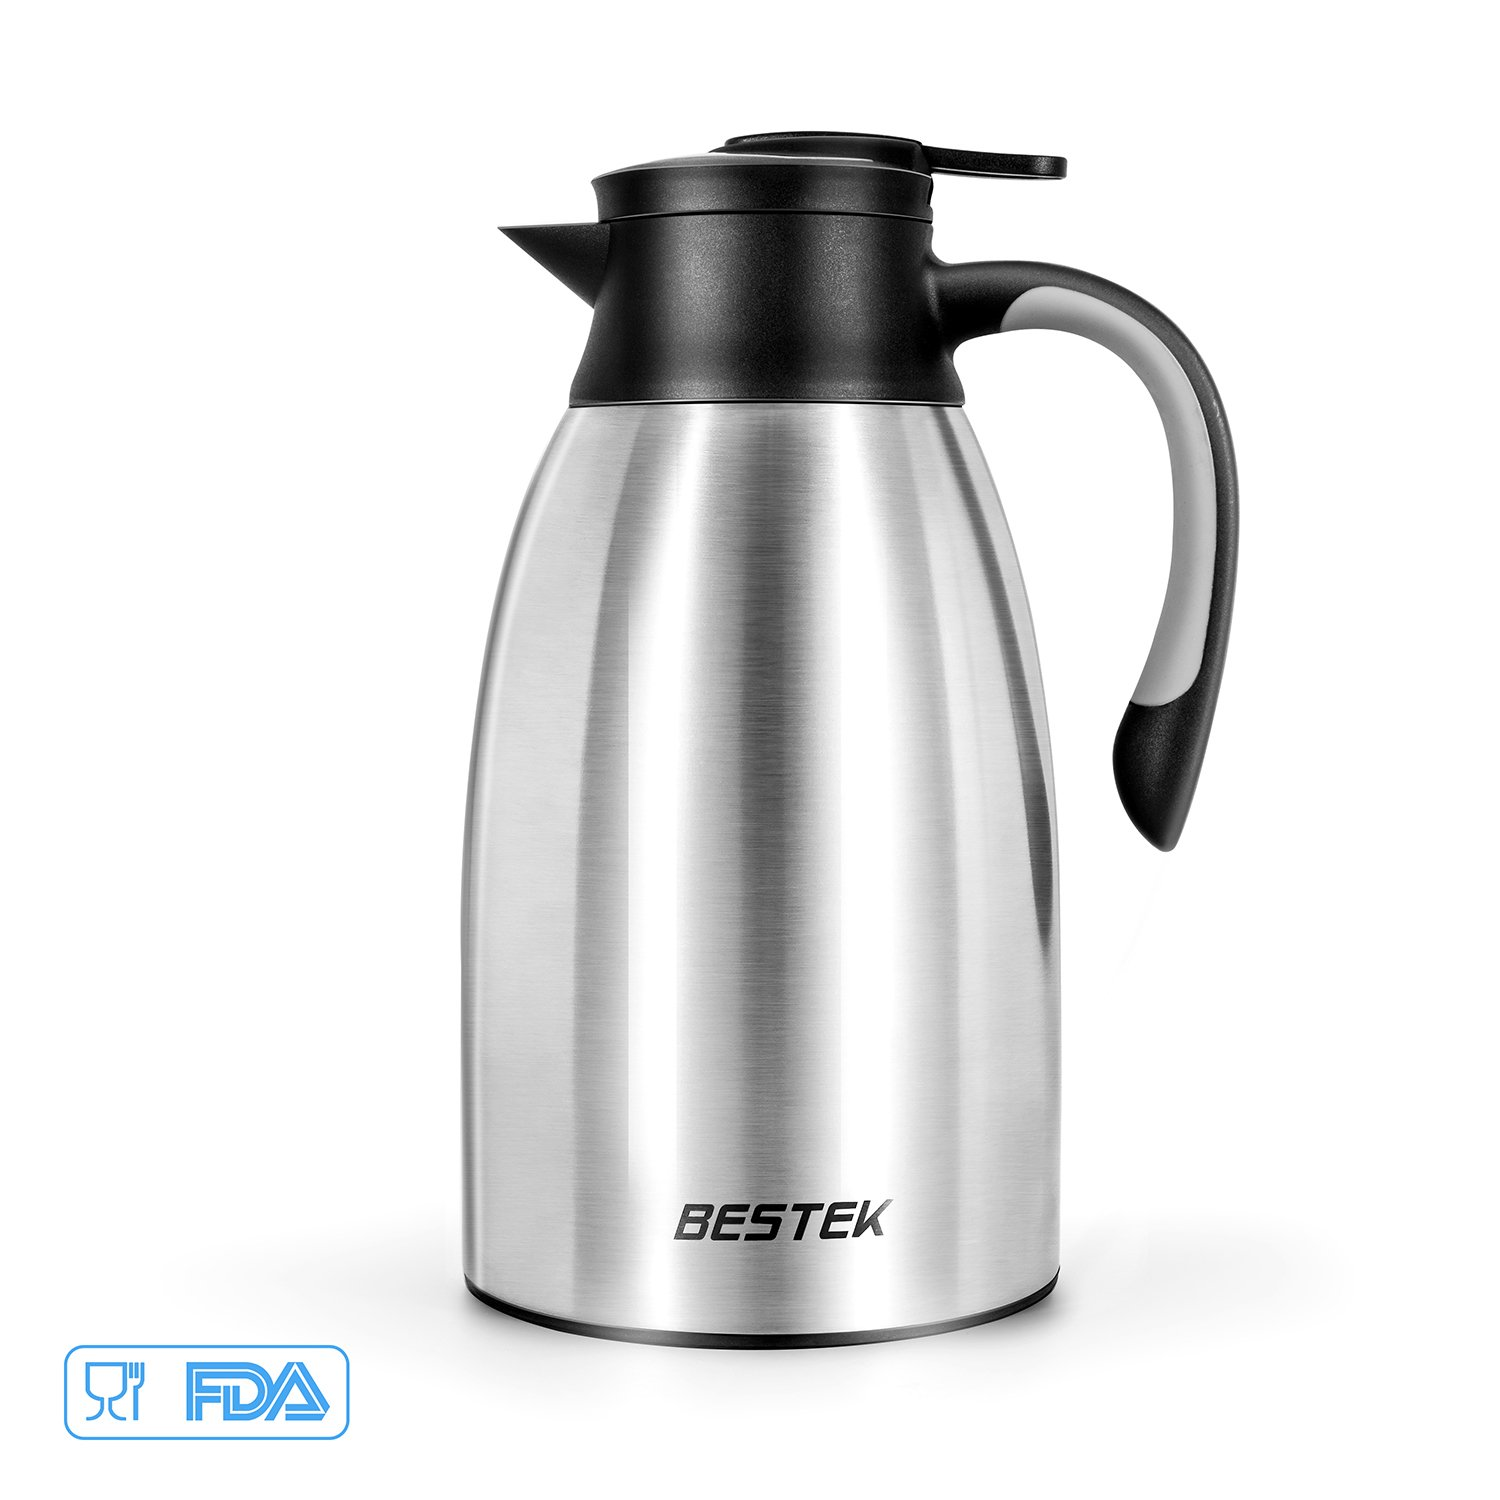 68 Oz Thermal Carafe by BESTEK, Stainless Steel Double Walled Vacuum Insulated Thermos for Coffee Tea or Hot Water - Heat Cold Retention